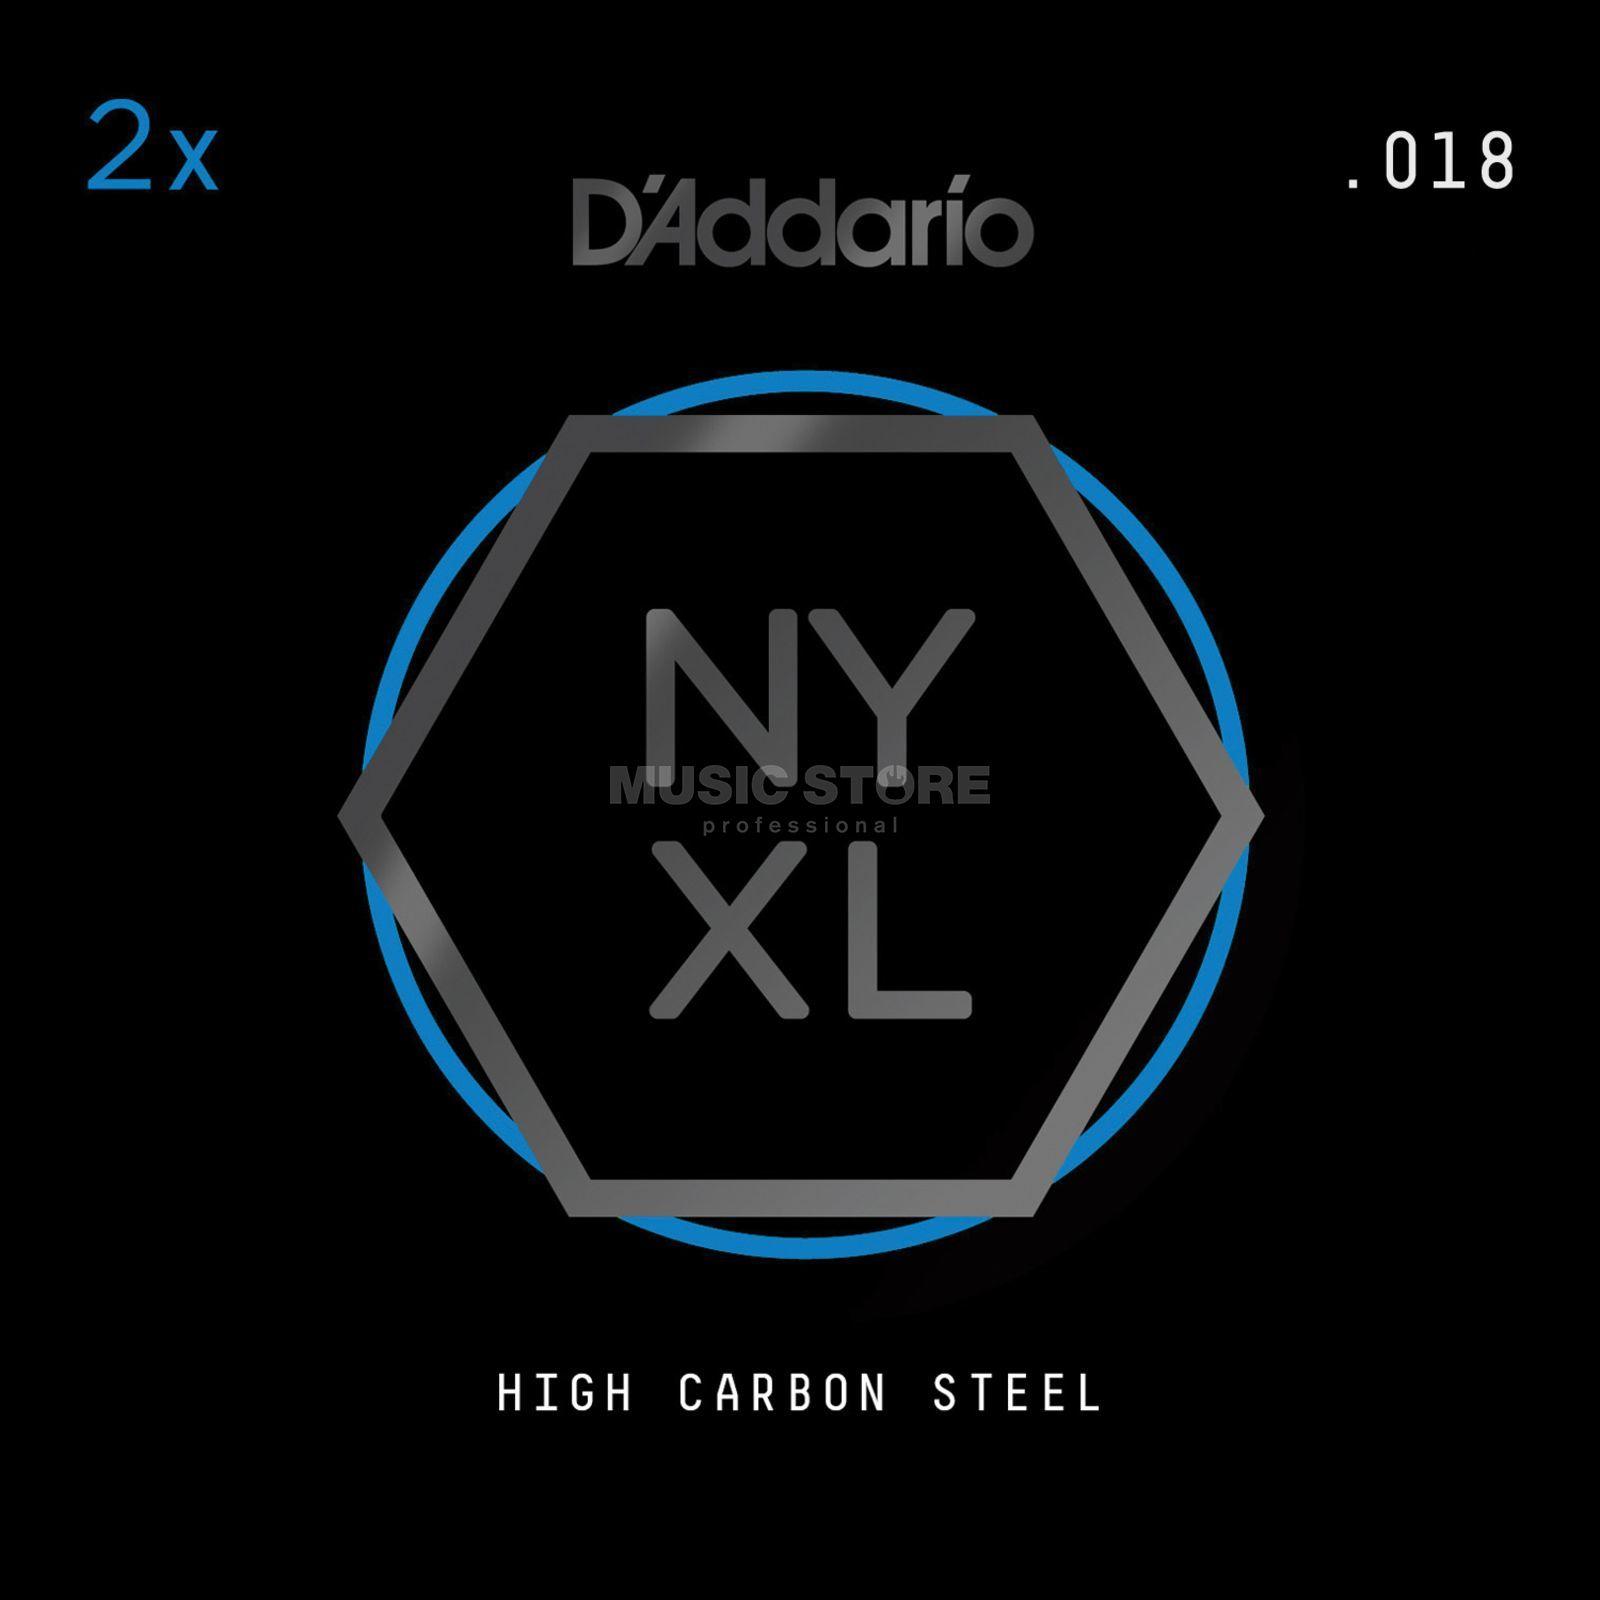 D'Addario NYPL018 Plain Single String 2-Pack - High Carbon Steel Immagine prodotto